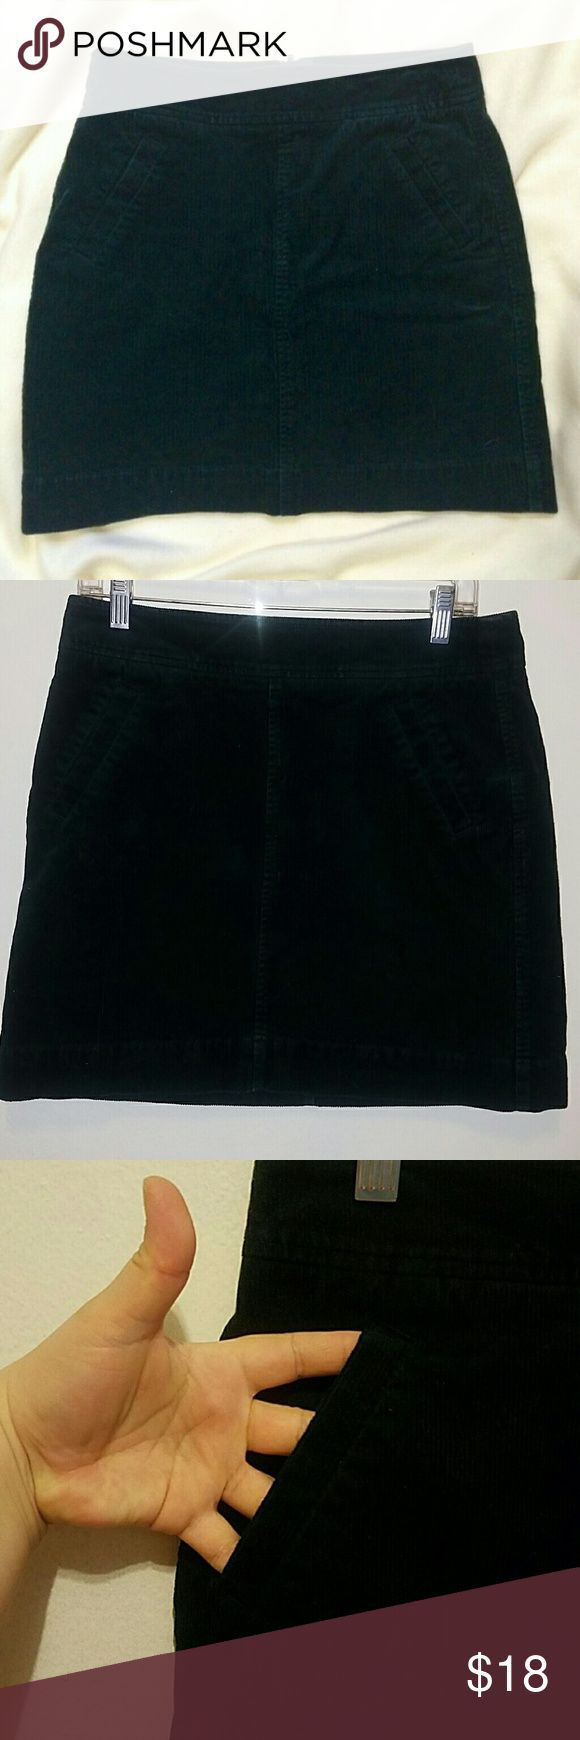 LOFT dark green curd skirt BOGO SALE! Excellent condition, with 2 front pockets and 2 back pockets also a back zipper, measures 18 inches long and 34 waist and hips are 40 inches. LOFT Skirts